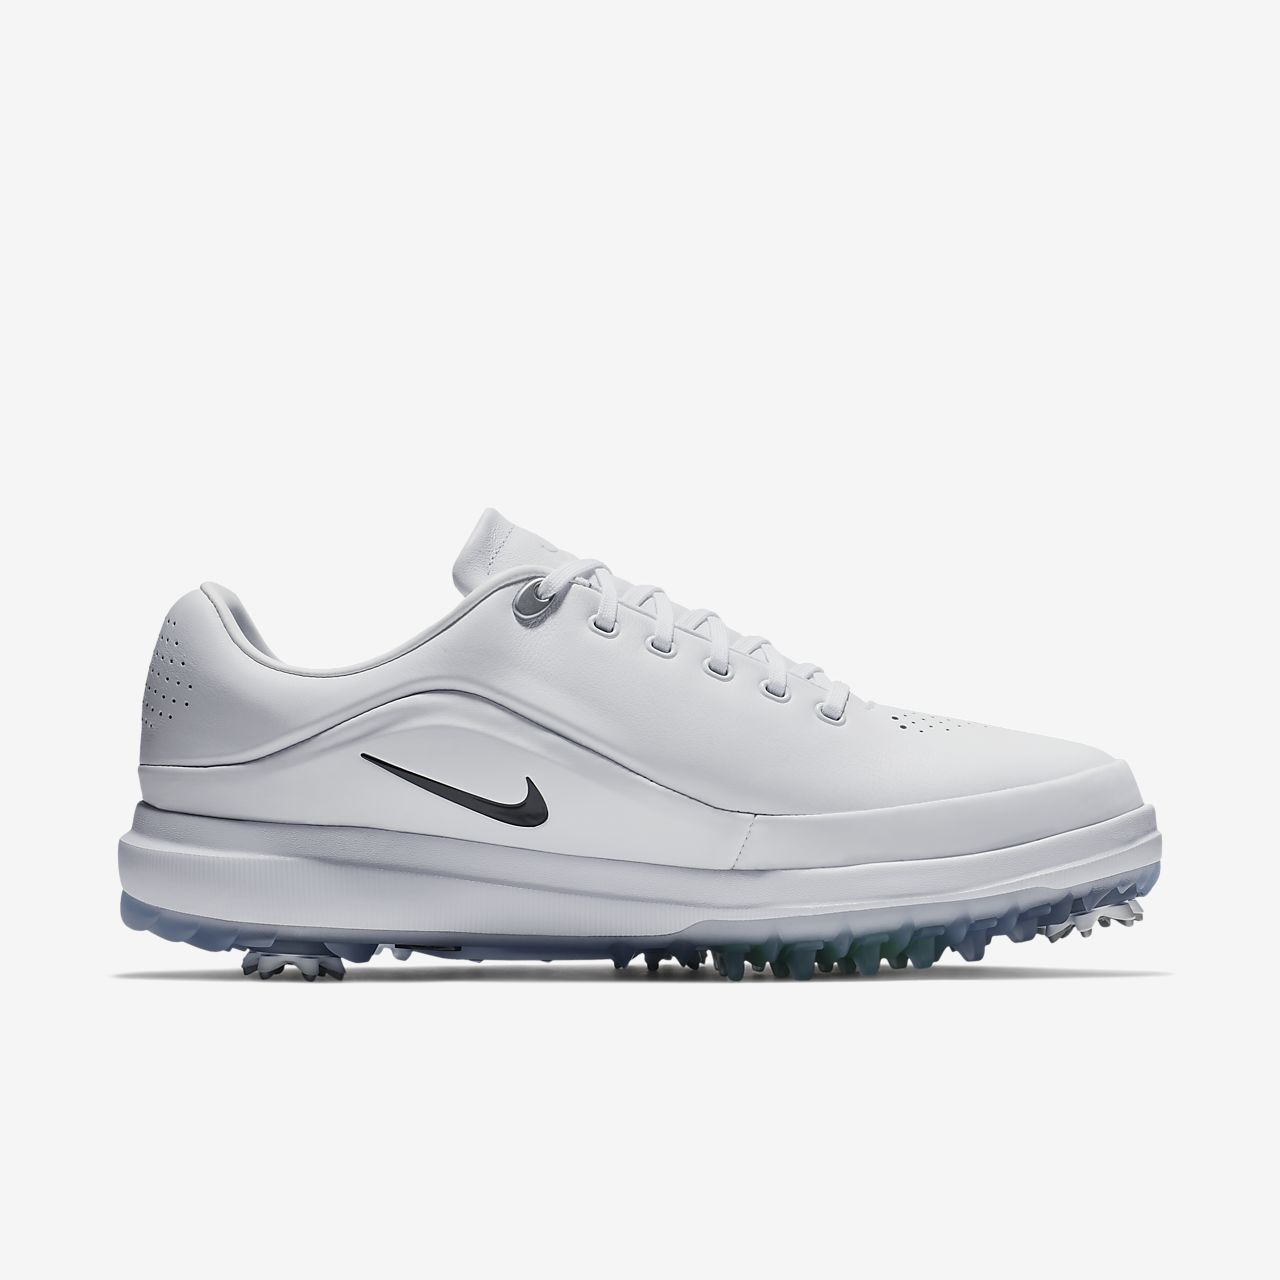 581c3208d766e9 Nike Air Zoom Precision Men s Golf Shoe. Nike.com IL